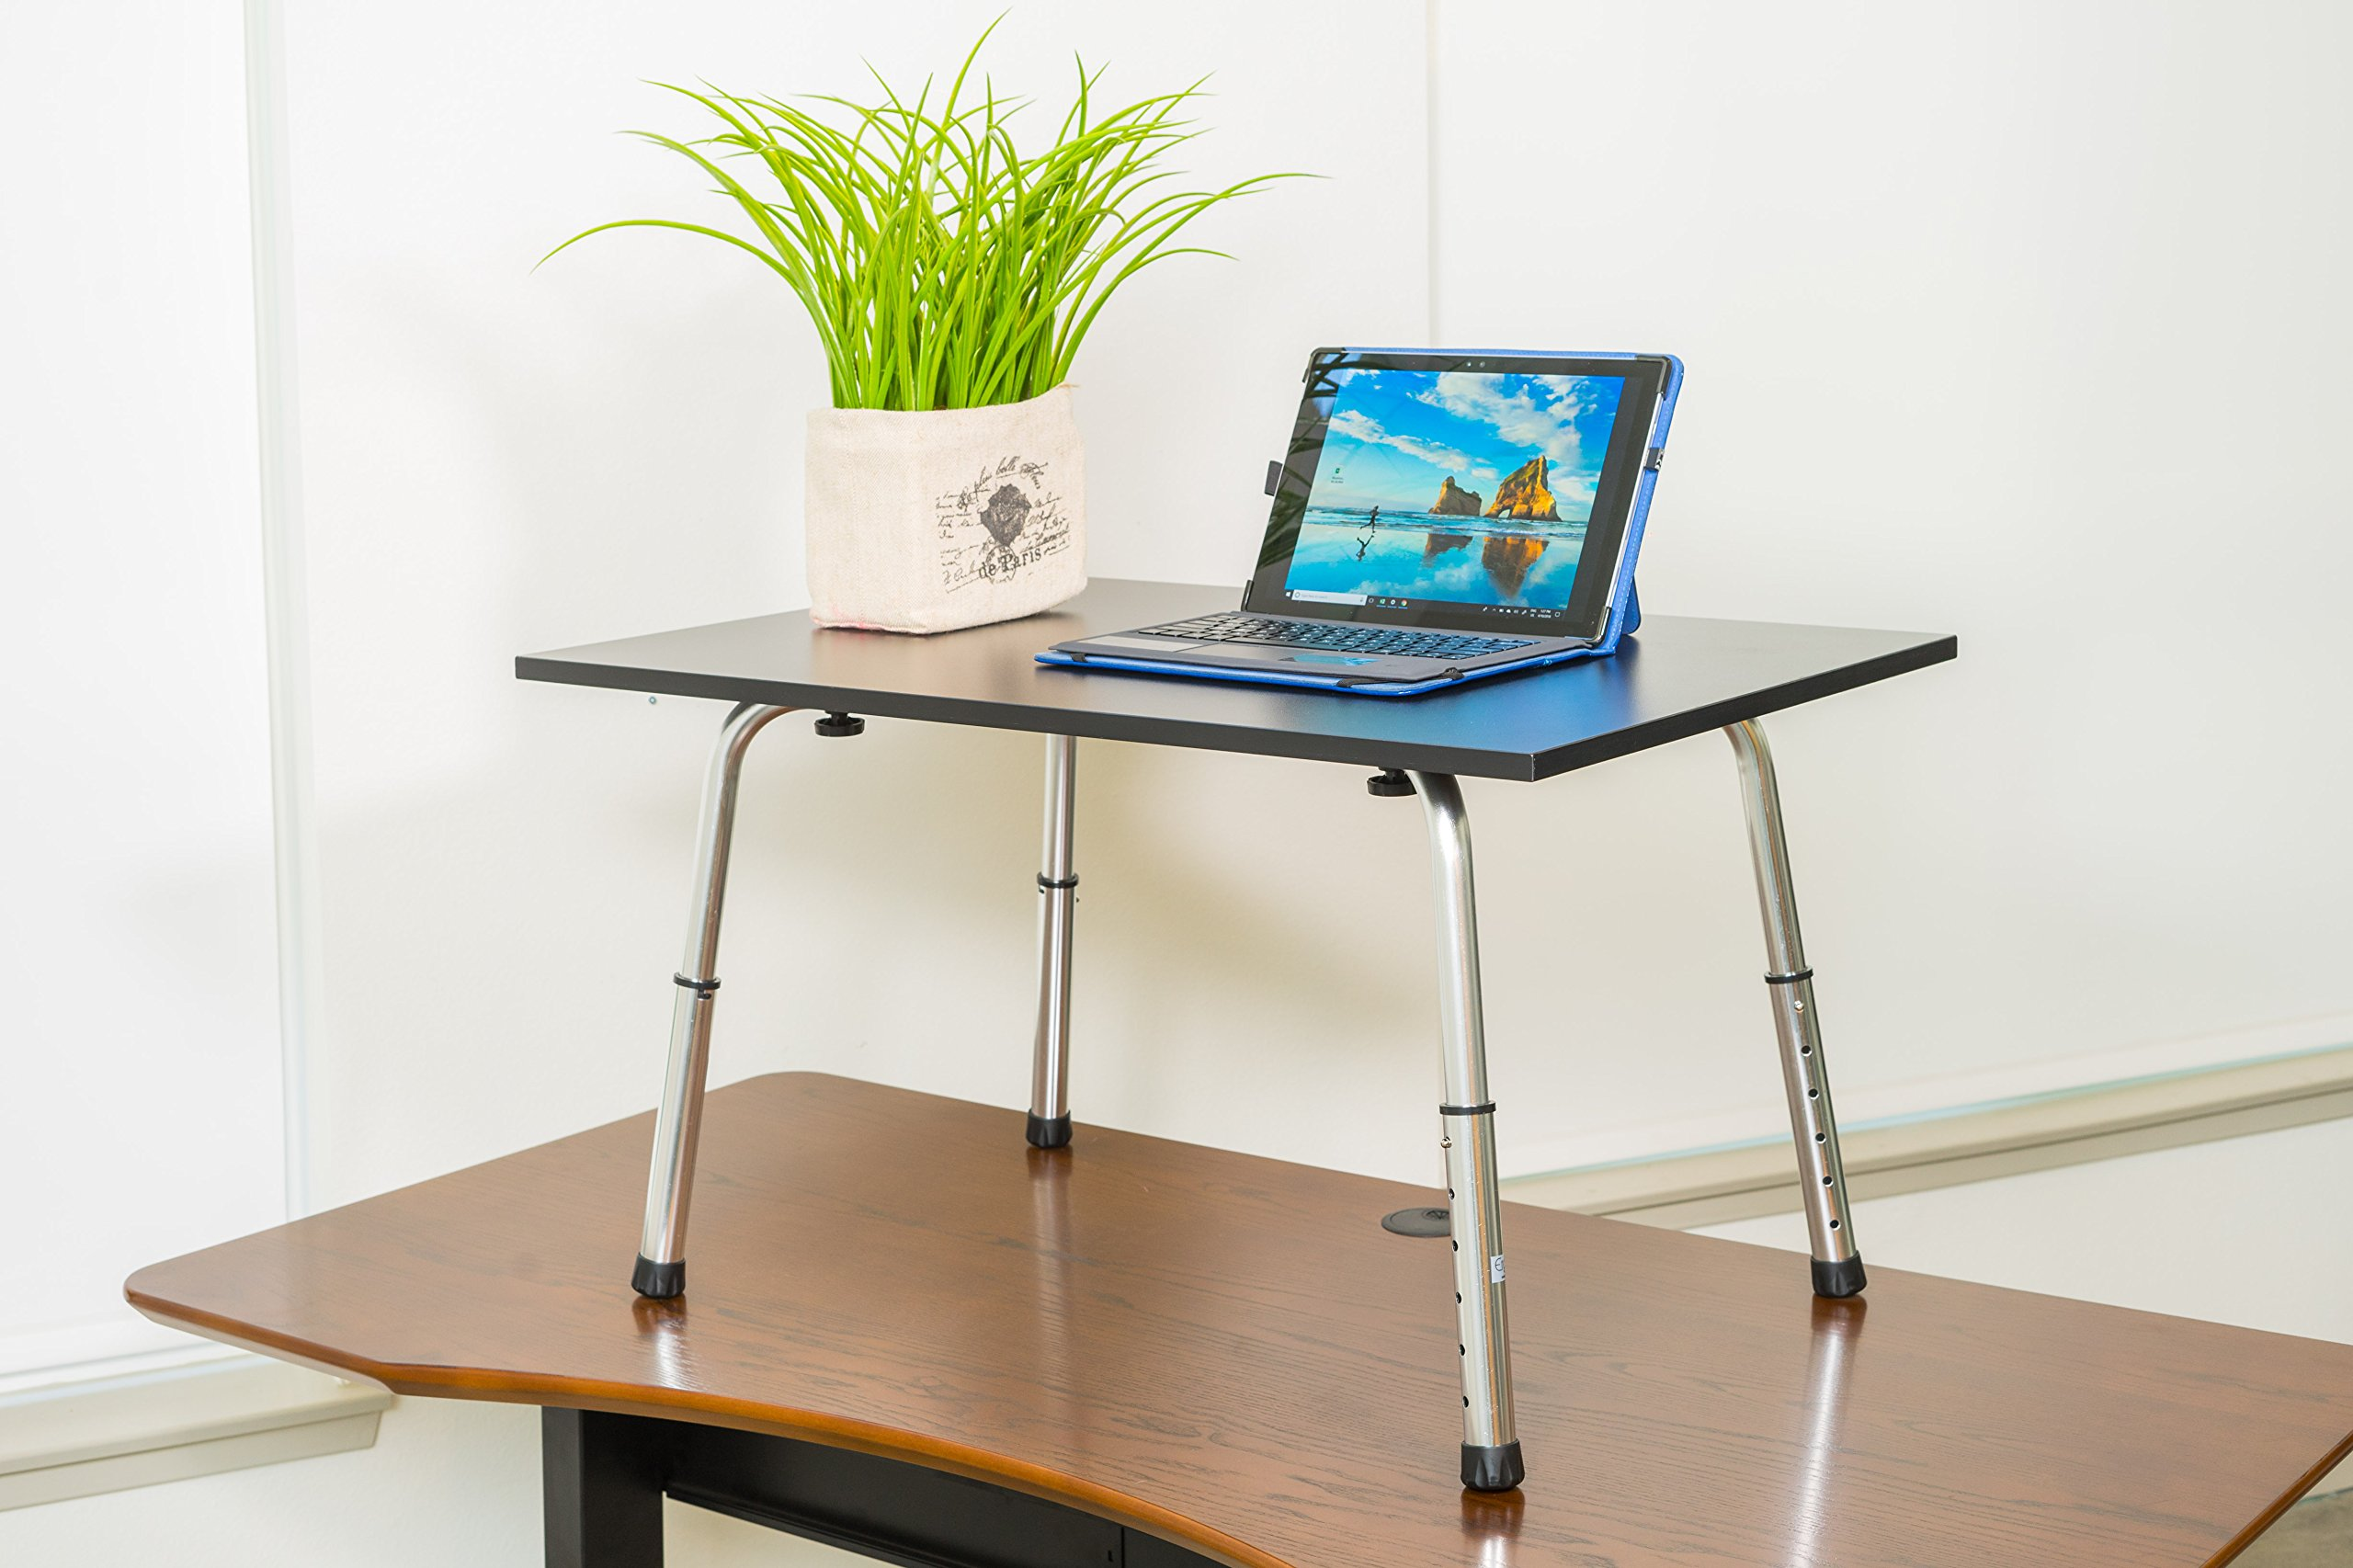 Ergomax Office ABC002 Home Office Desks, Extra Long Portable and Versatile Height Adjustable Workstation and Stand Up Desk Table, Laptop Modern Table, Black by Ergomax Office (Image #2)